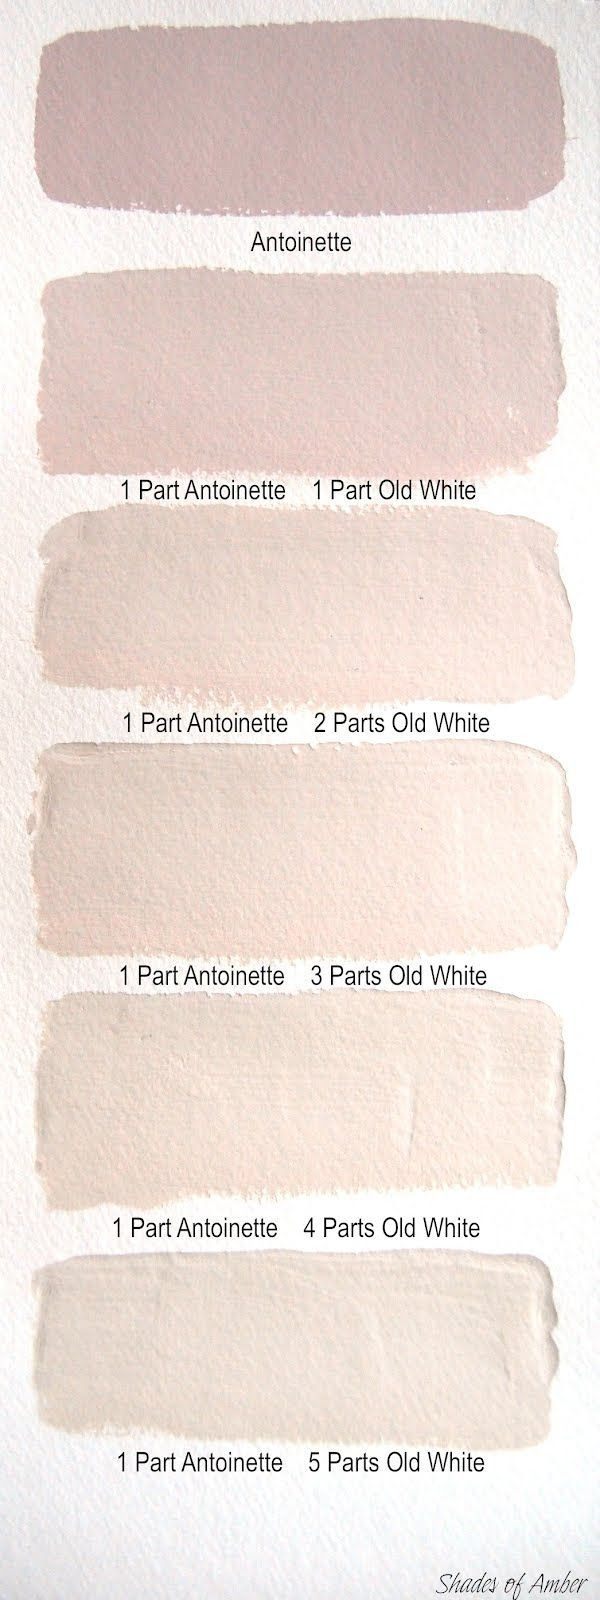 Pastel Paint Colors Bedrooms Blush Wall Colors Paint Homedecor Interiordesign Home